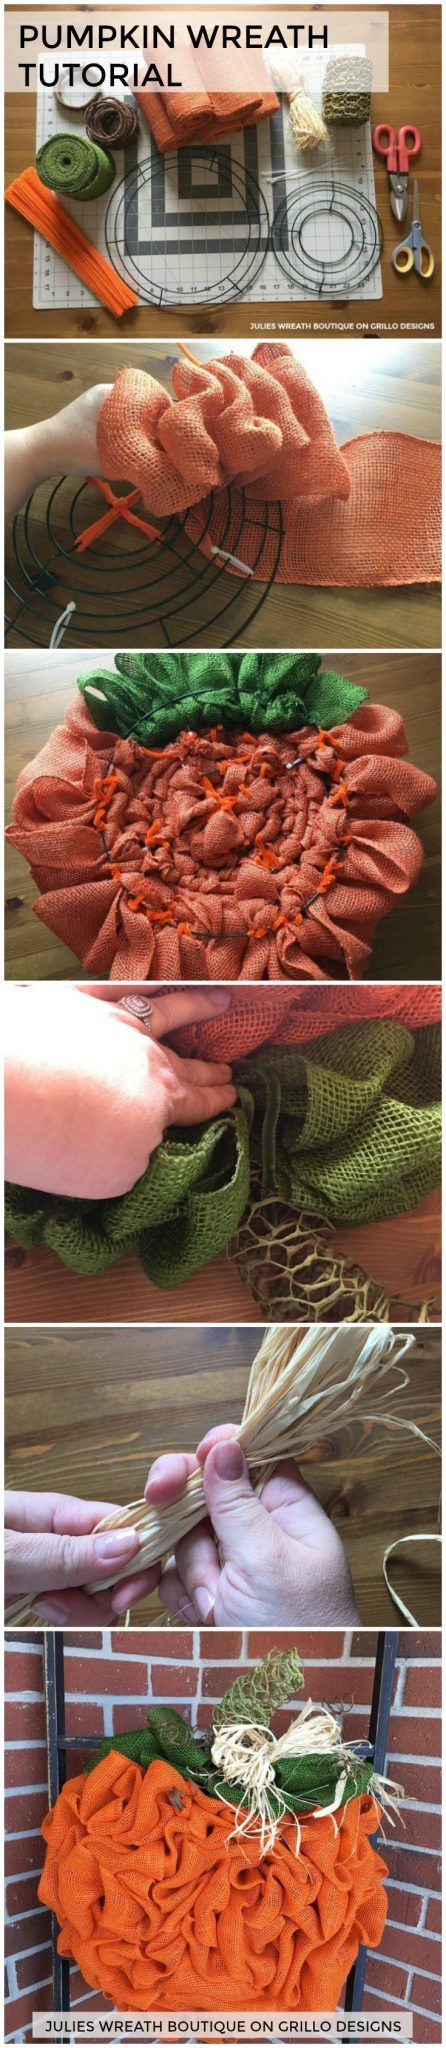 Ever wondered how to make a DIY pumpkin wreath? This tutorial by Julie Oxendine will show you step by step how to make the perfect pumpkin wreath for Fall! So grab your burlap and lets get crafting!